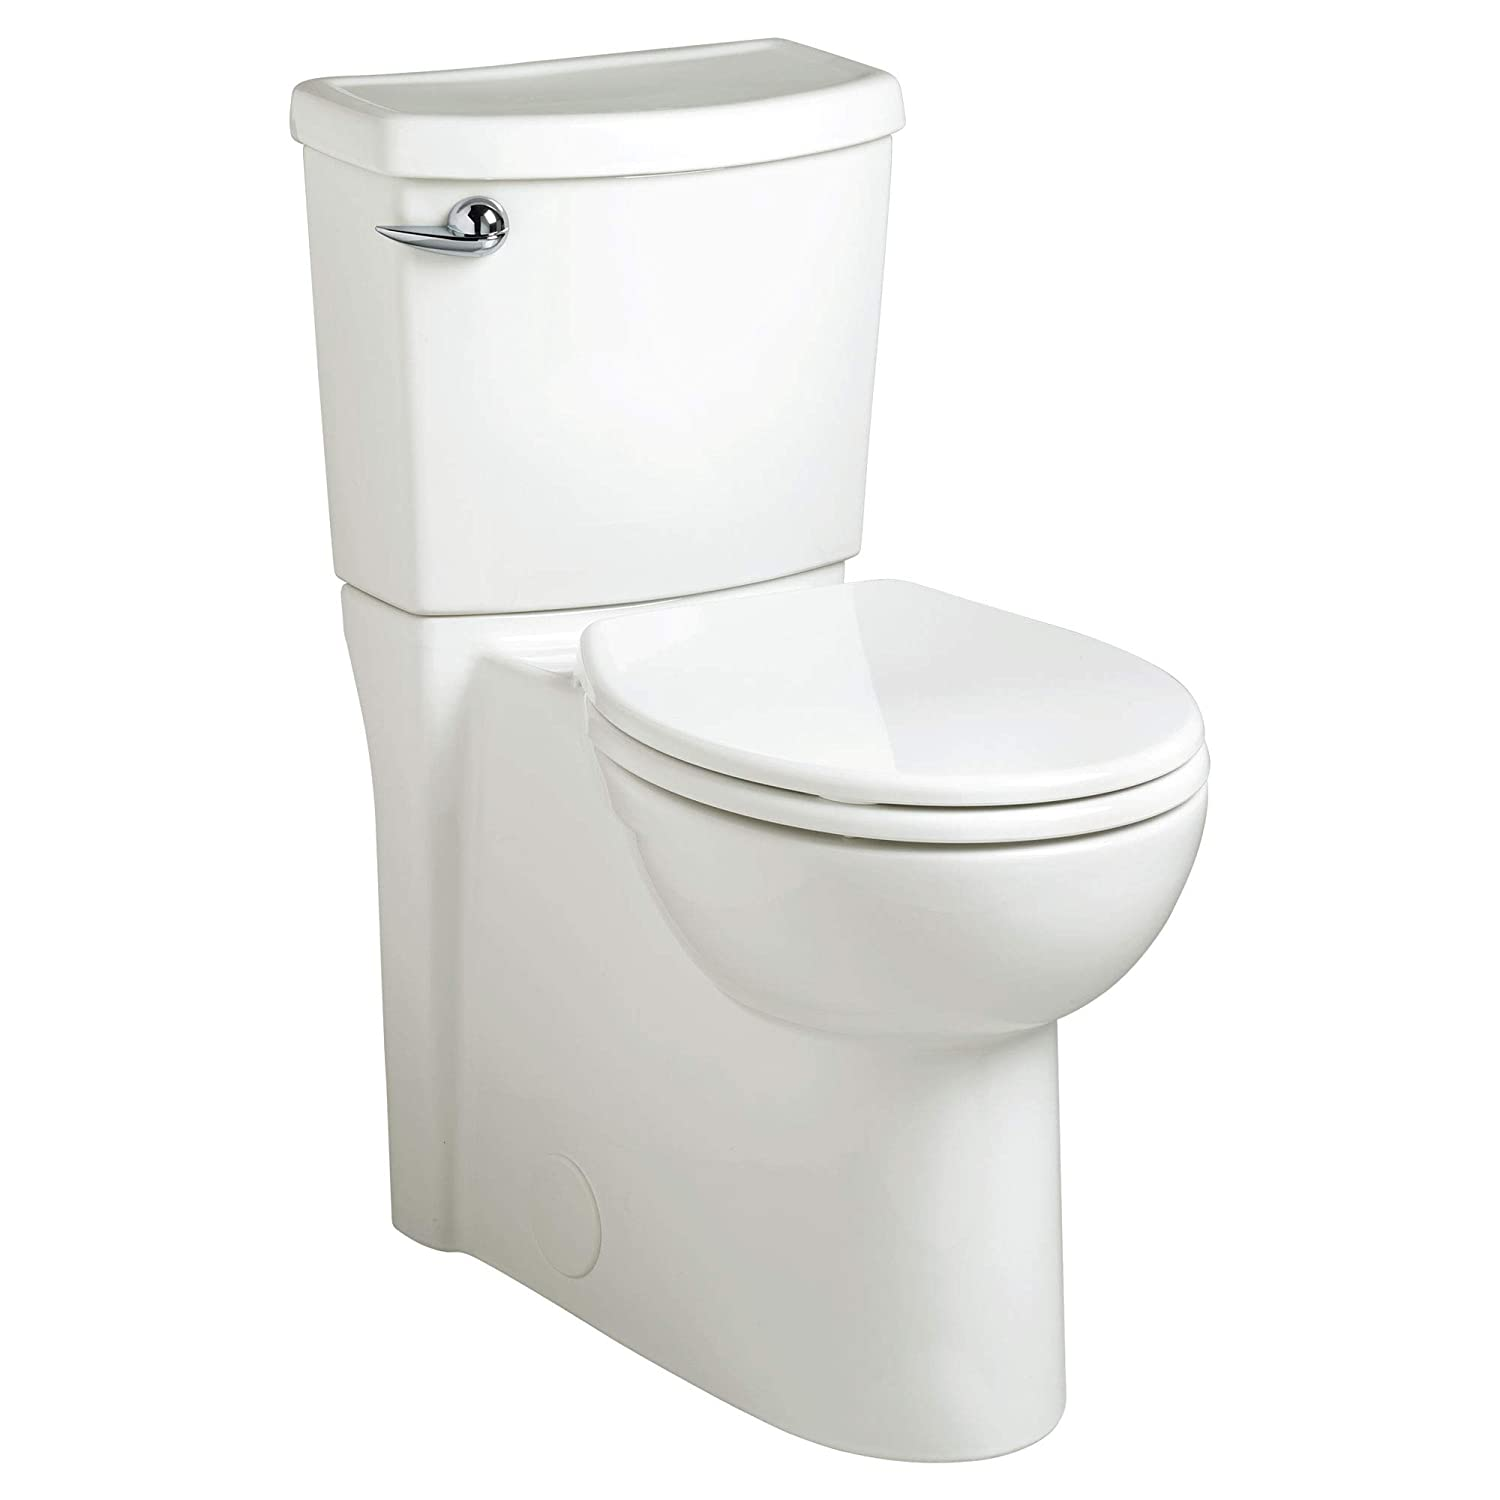 Top 5 Best Skirted Toilets Reviews in 2020 3